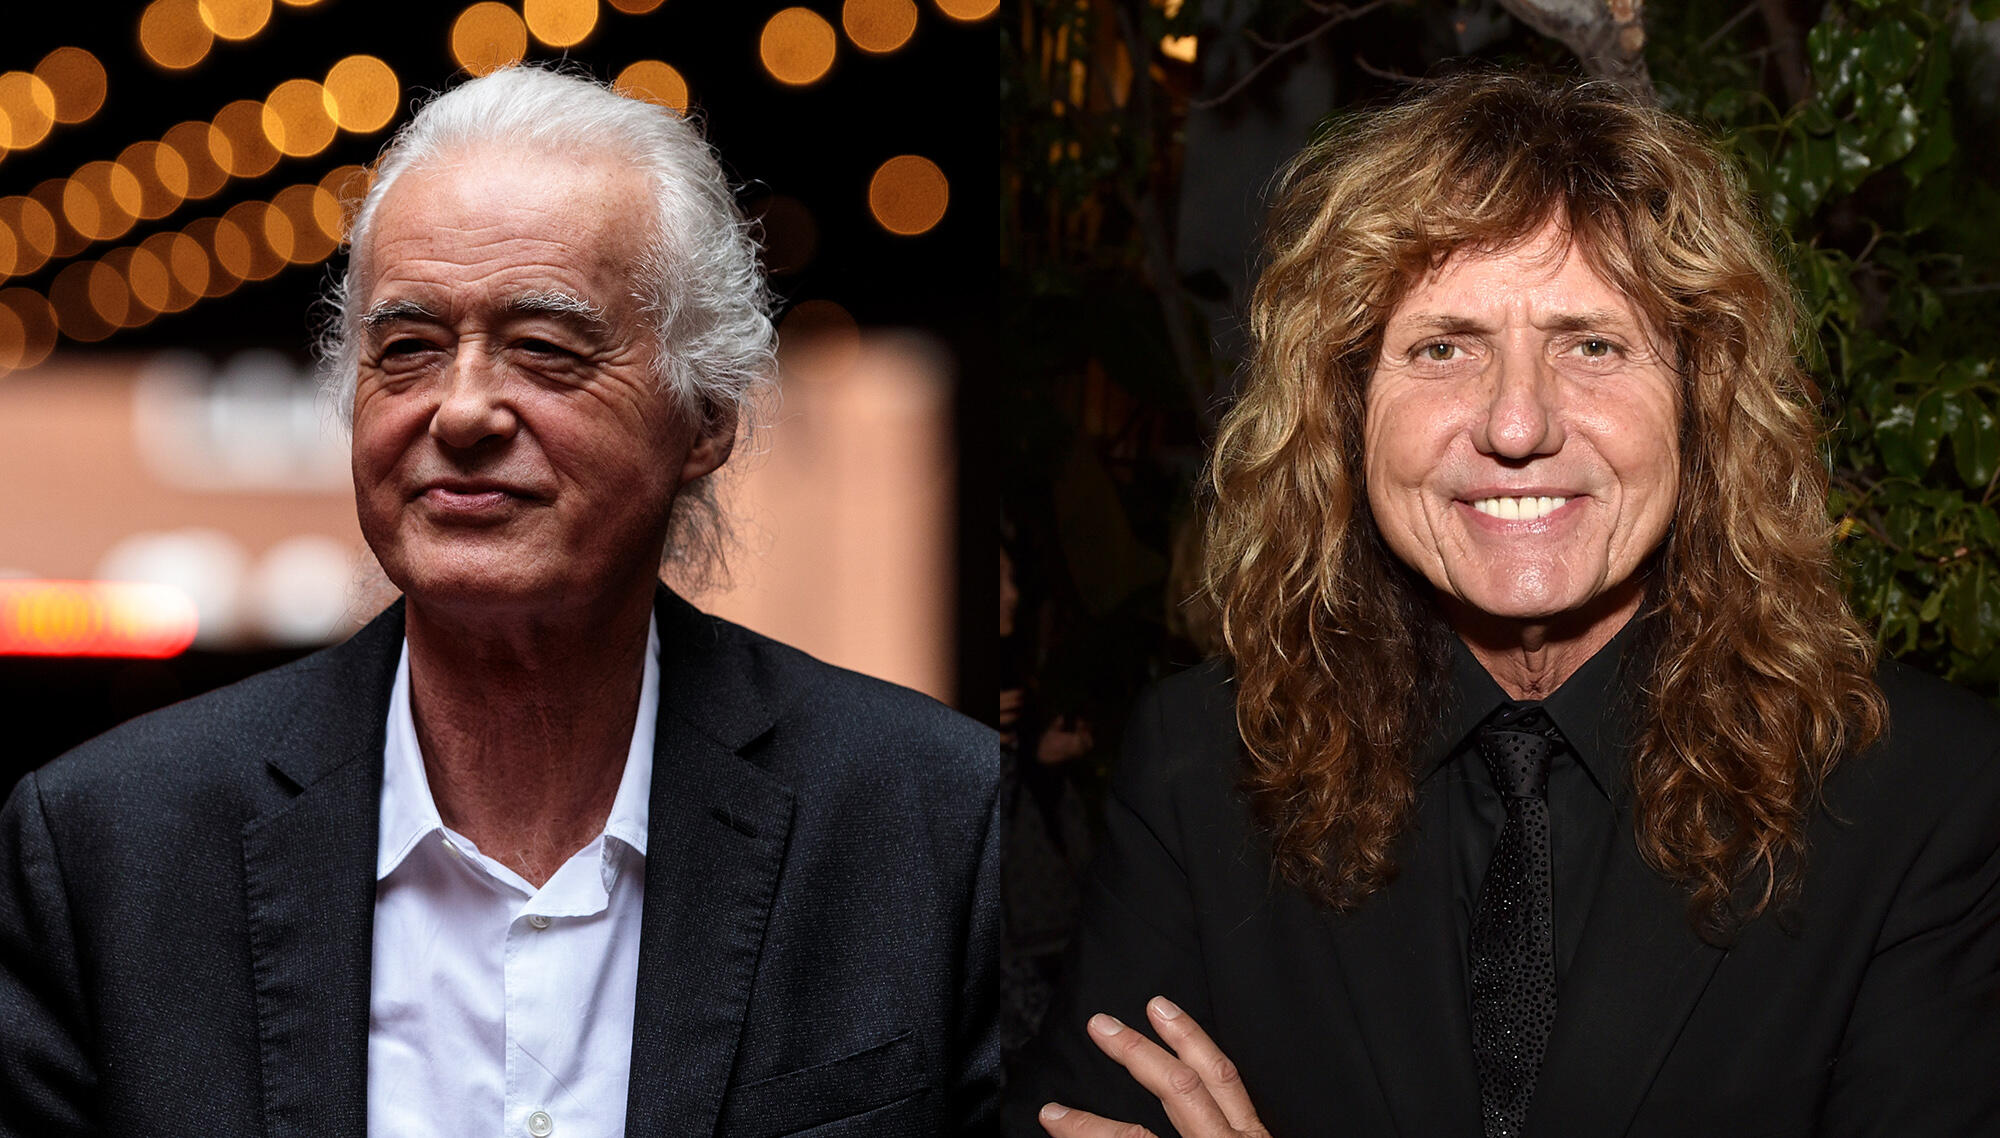 David Coverdale Is Trying His Best To Coax New Music Out Of Jimmy Page